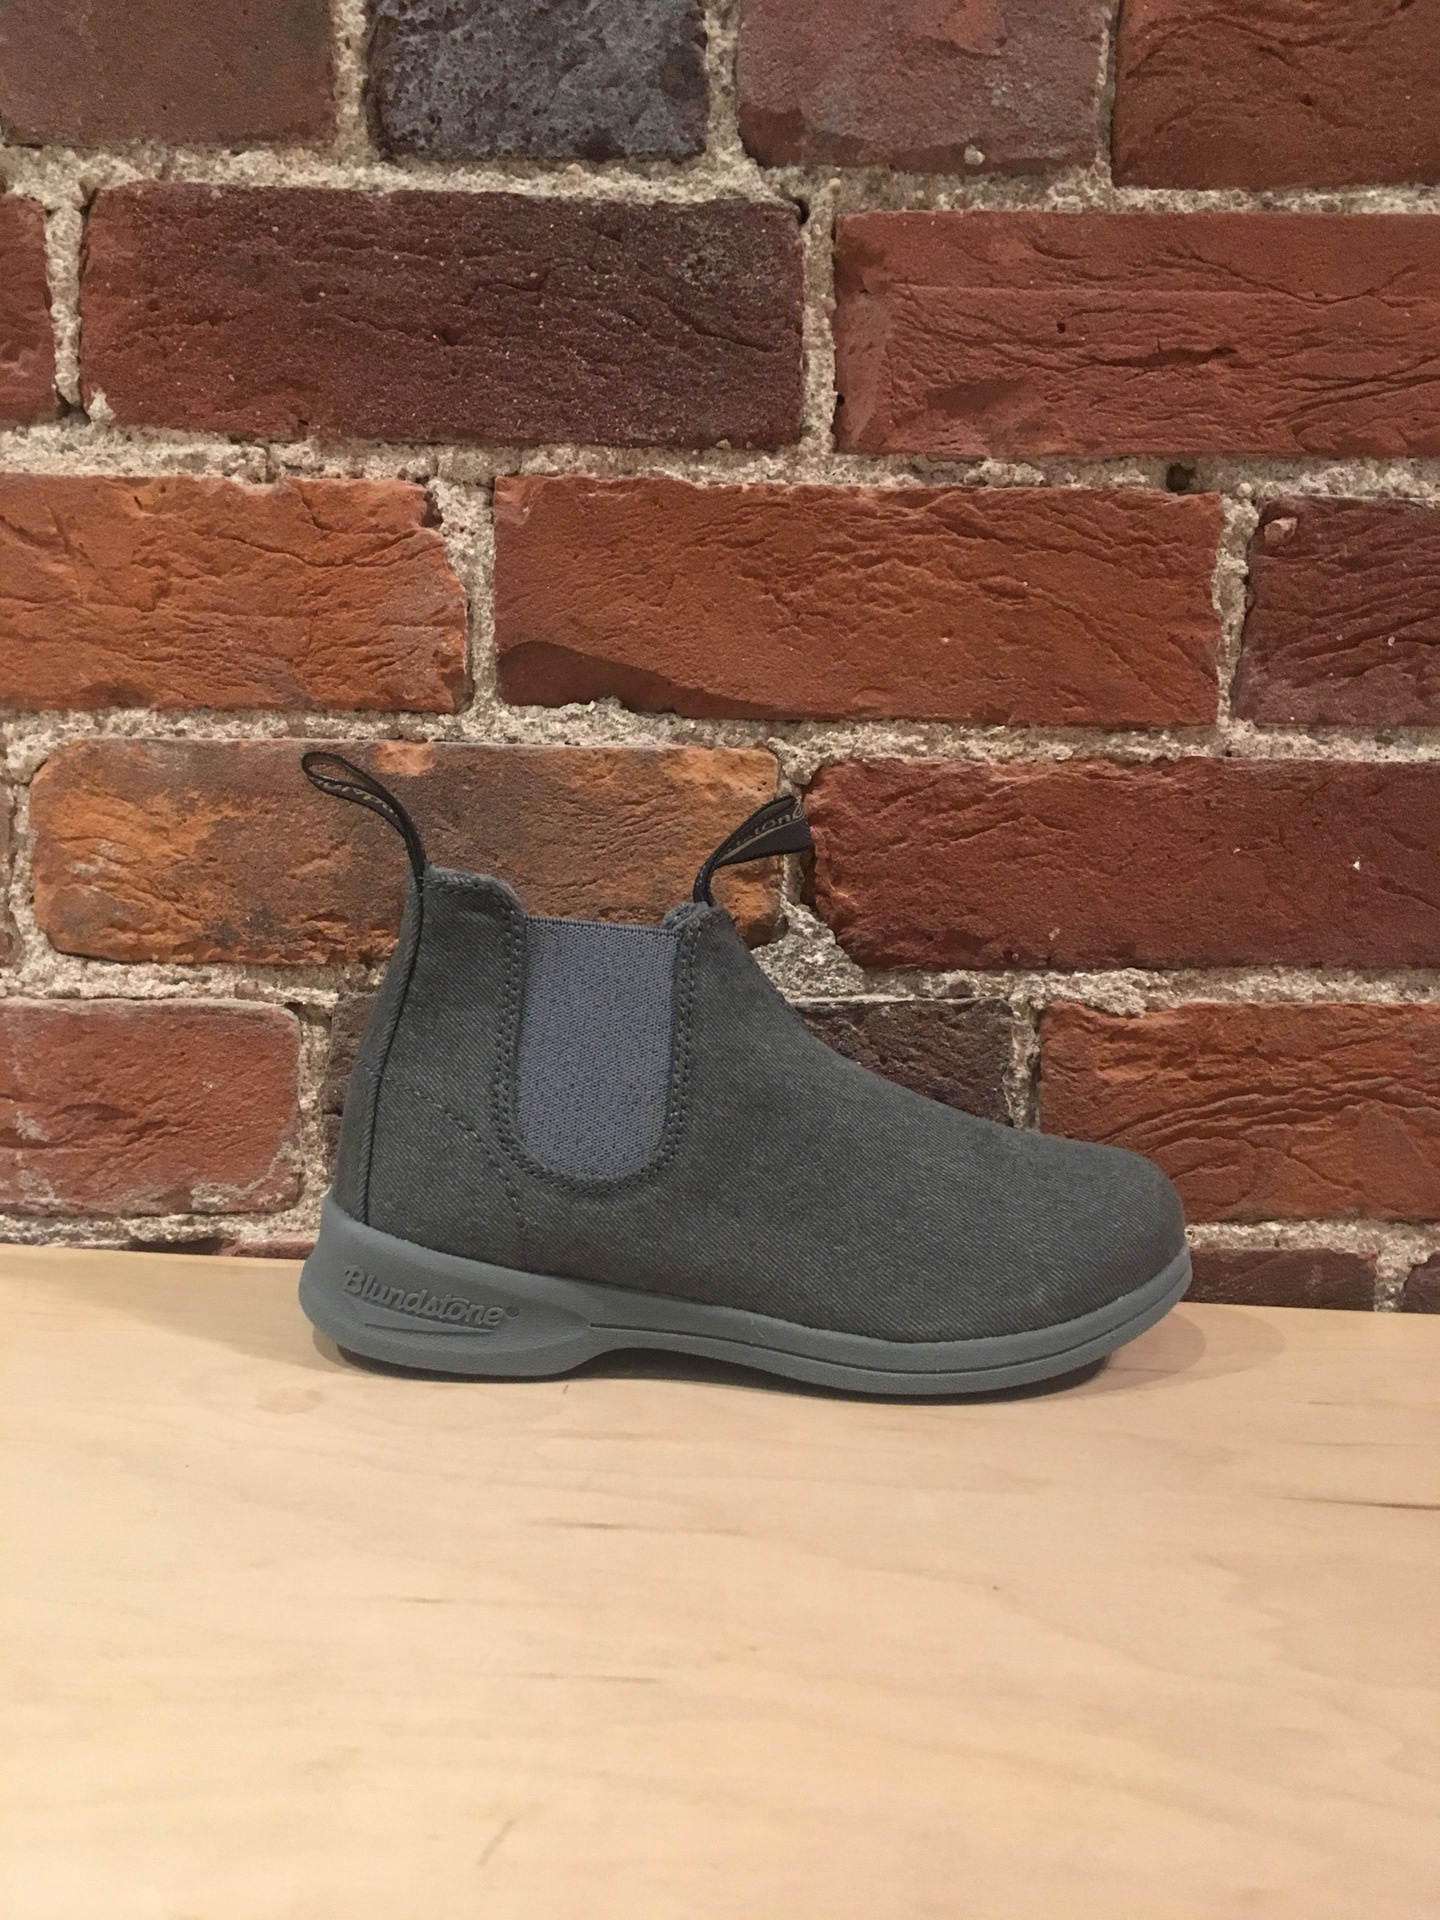 BLUNDSTONE -  1368 CANVAS IN CHARCOAL